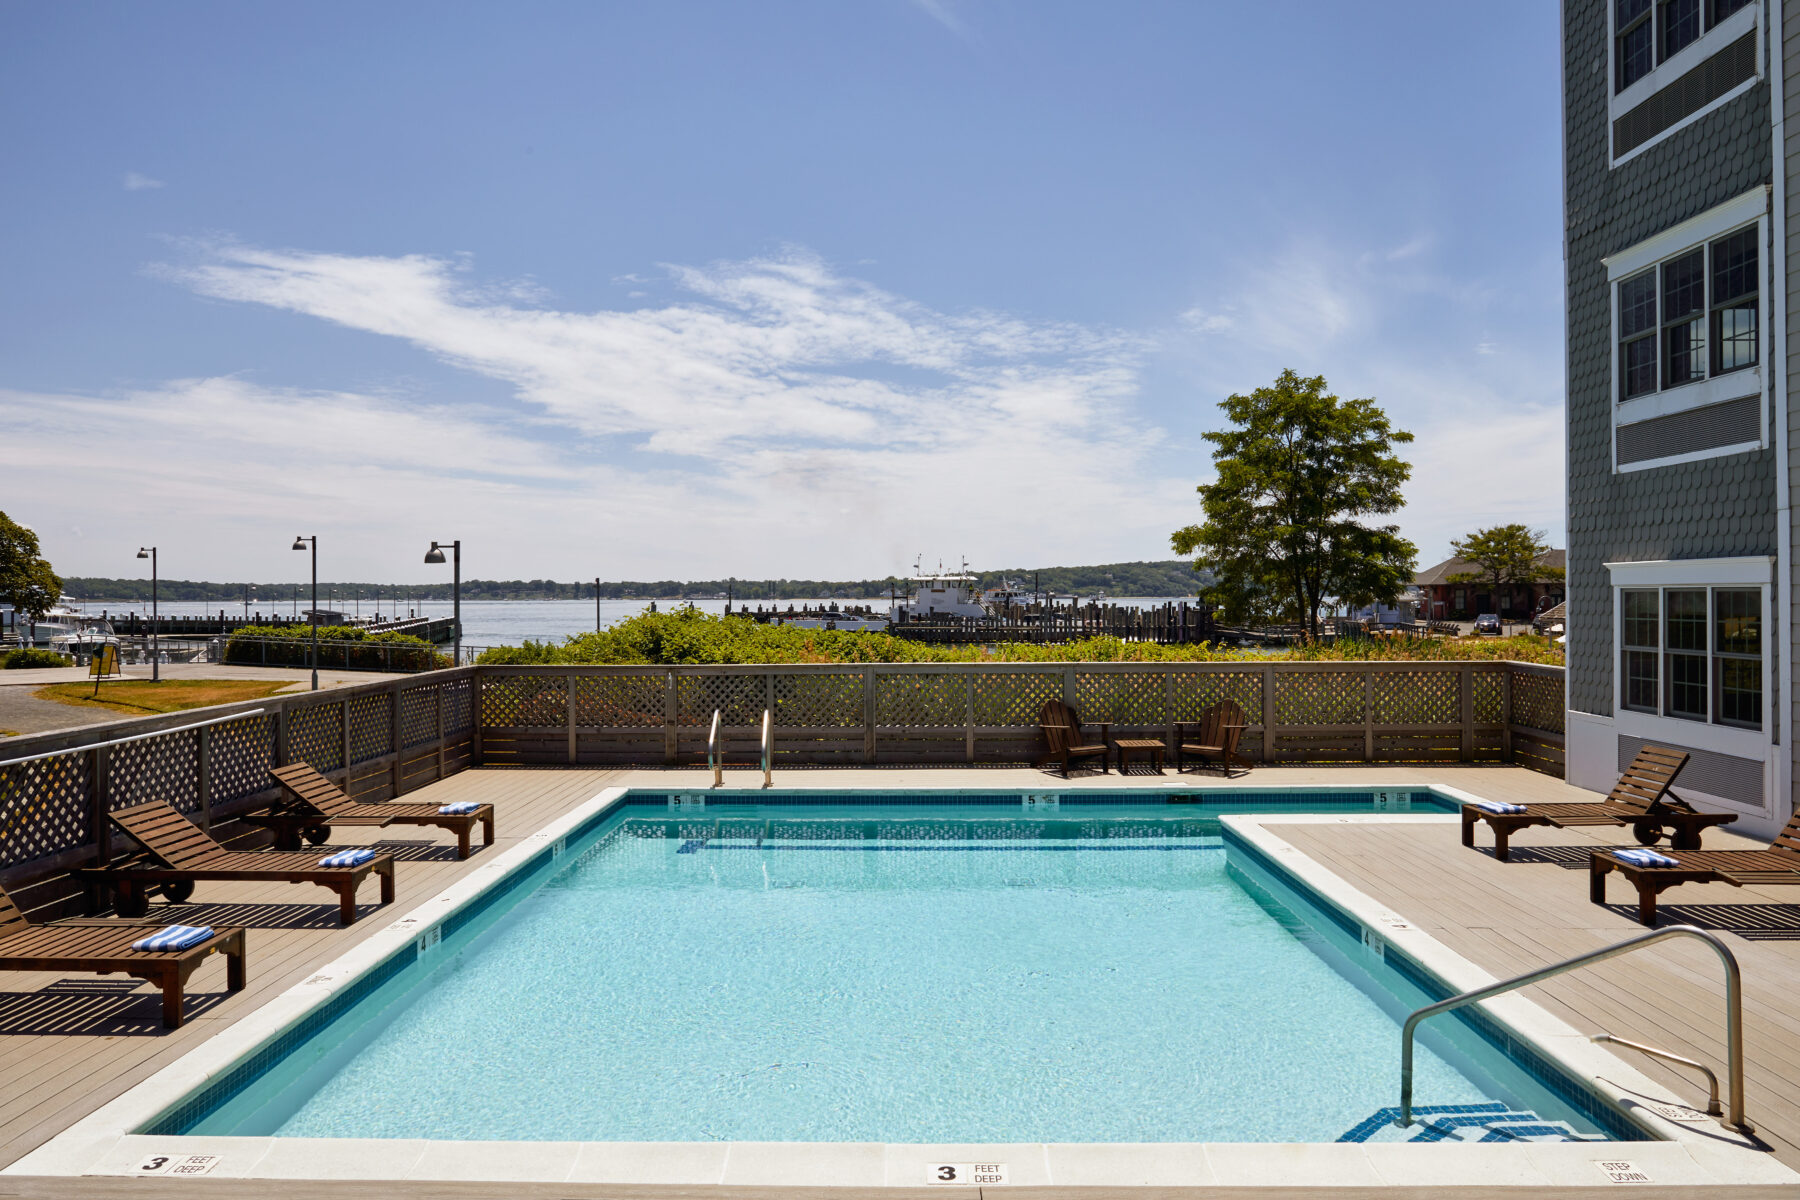 Harborfront Inn pool